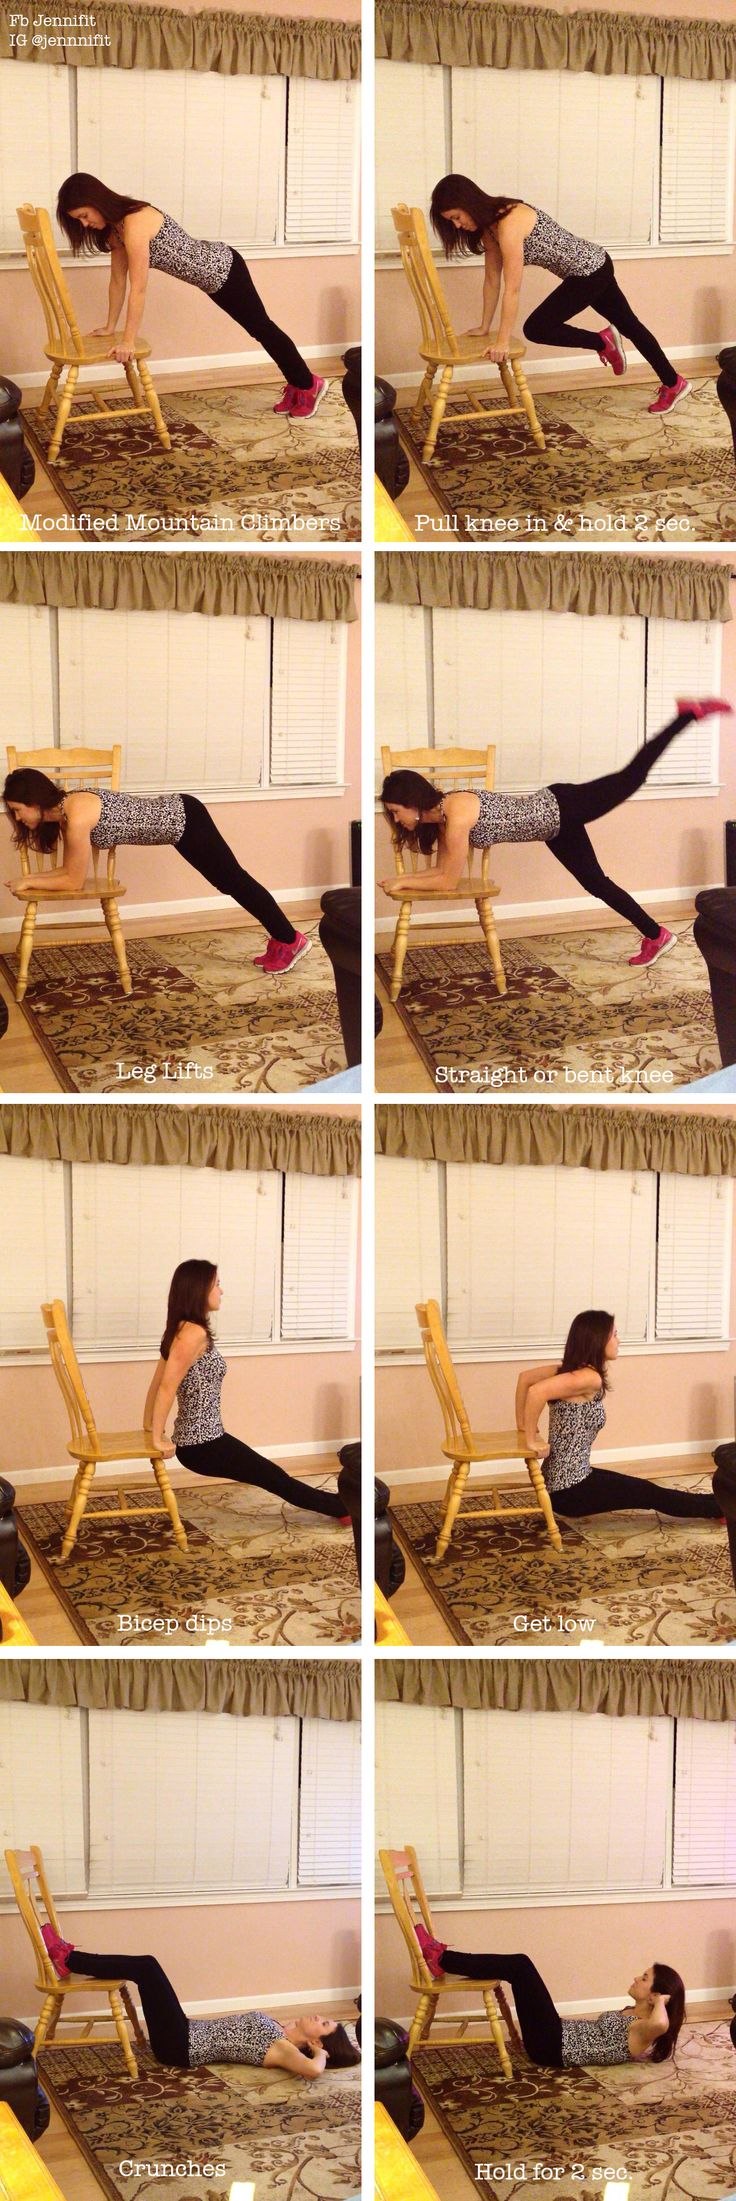 Chair exercises. Modified Mountain Climbers for abs, 20 each side | Leg Lifts for glutes & hamstrings, 20-30 each leg | Bicep Dips, 8-15 reps | Crunches, 20-30 | Repeat entire circuit 3 or more times. | Exercise, at home workout, no gym, fitness, fitmom, health, weight loss, muscle, arms, abs, legs, booty, fibromyalgia